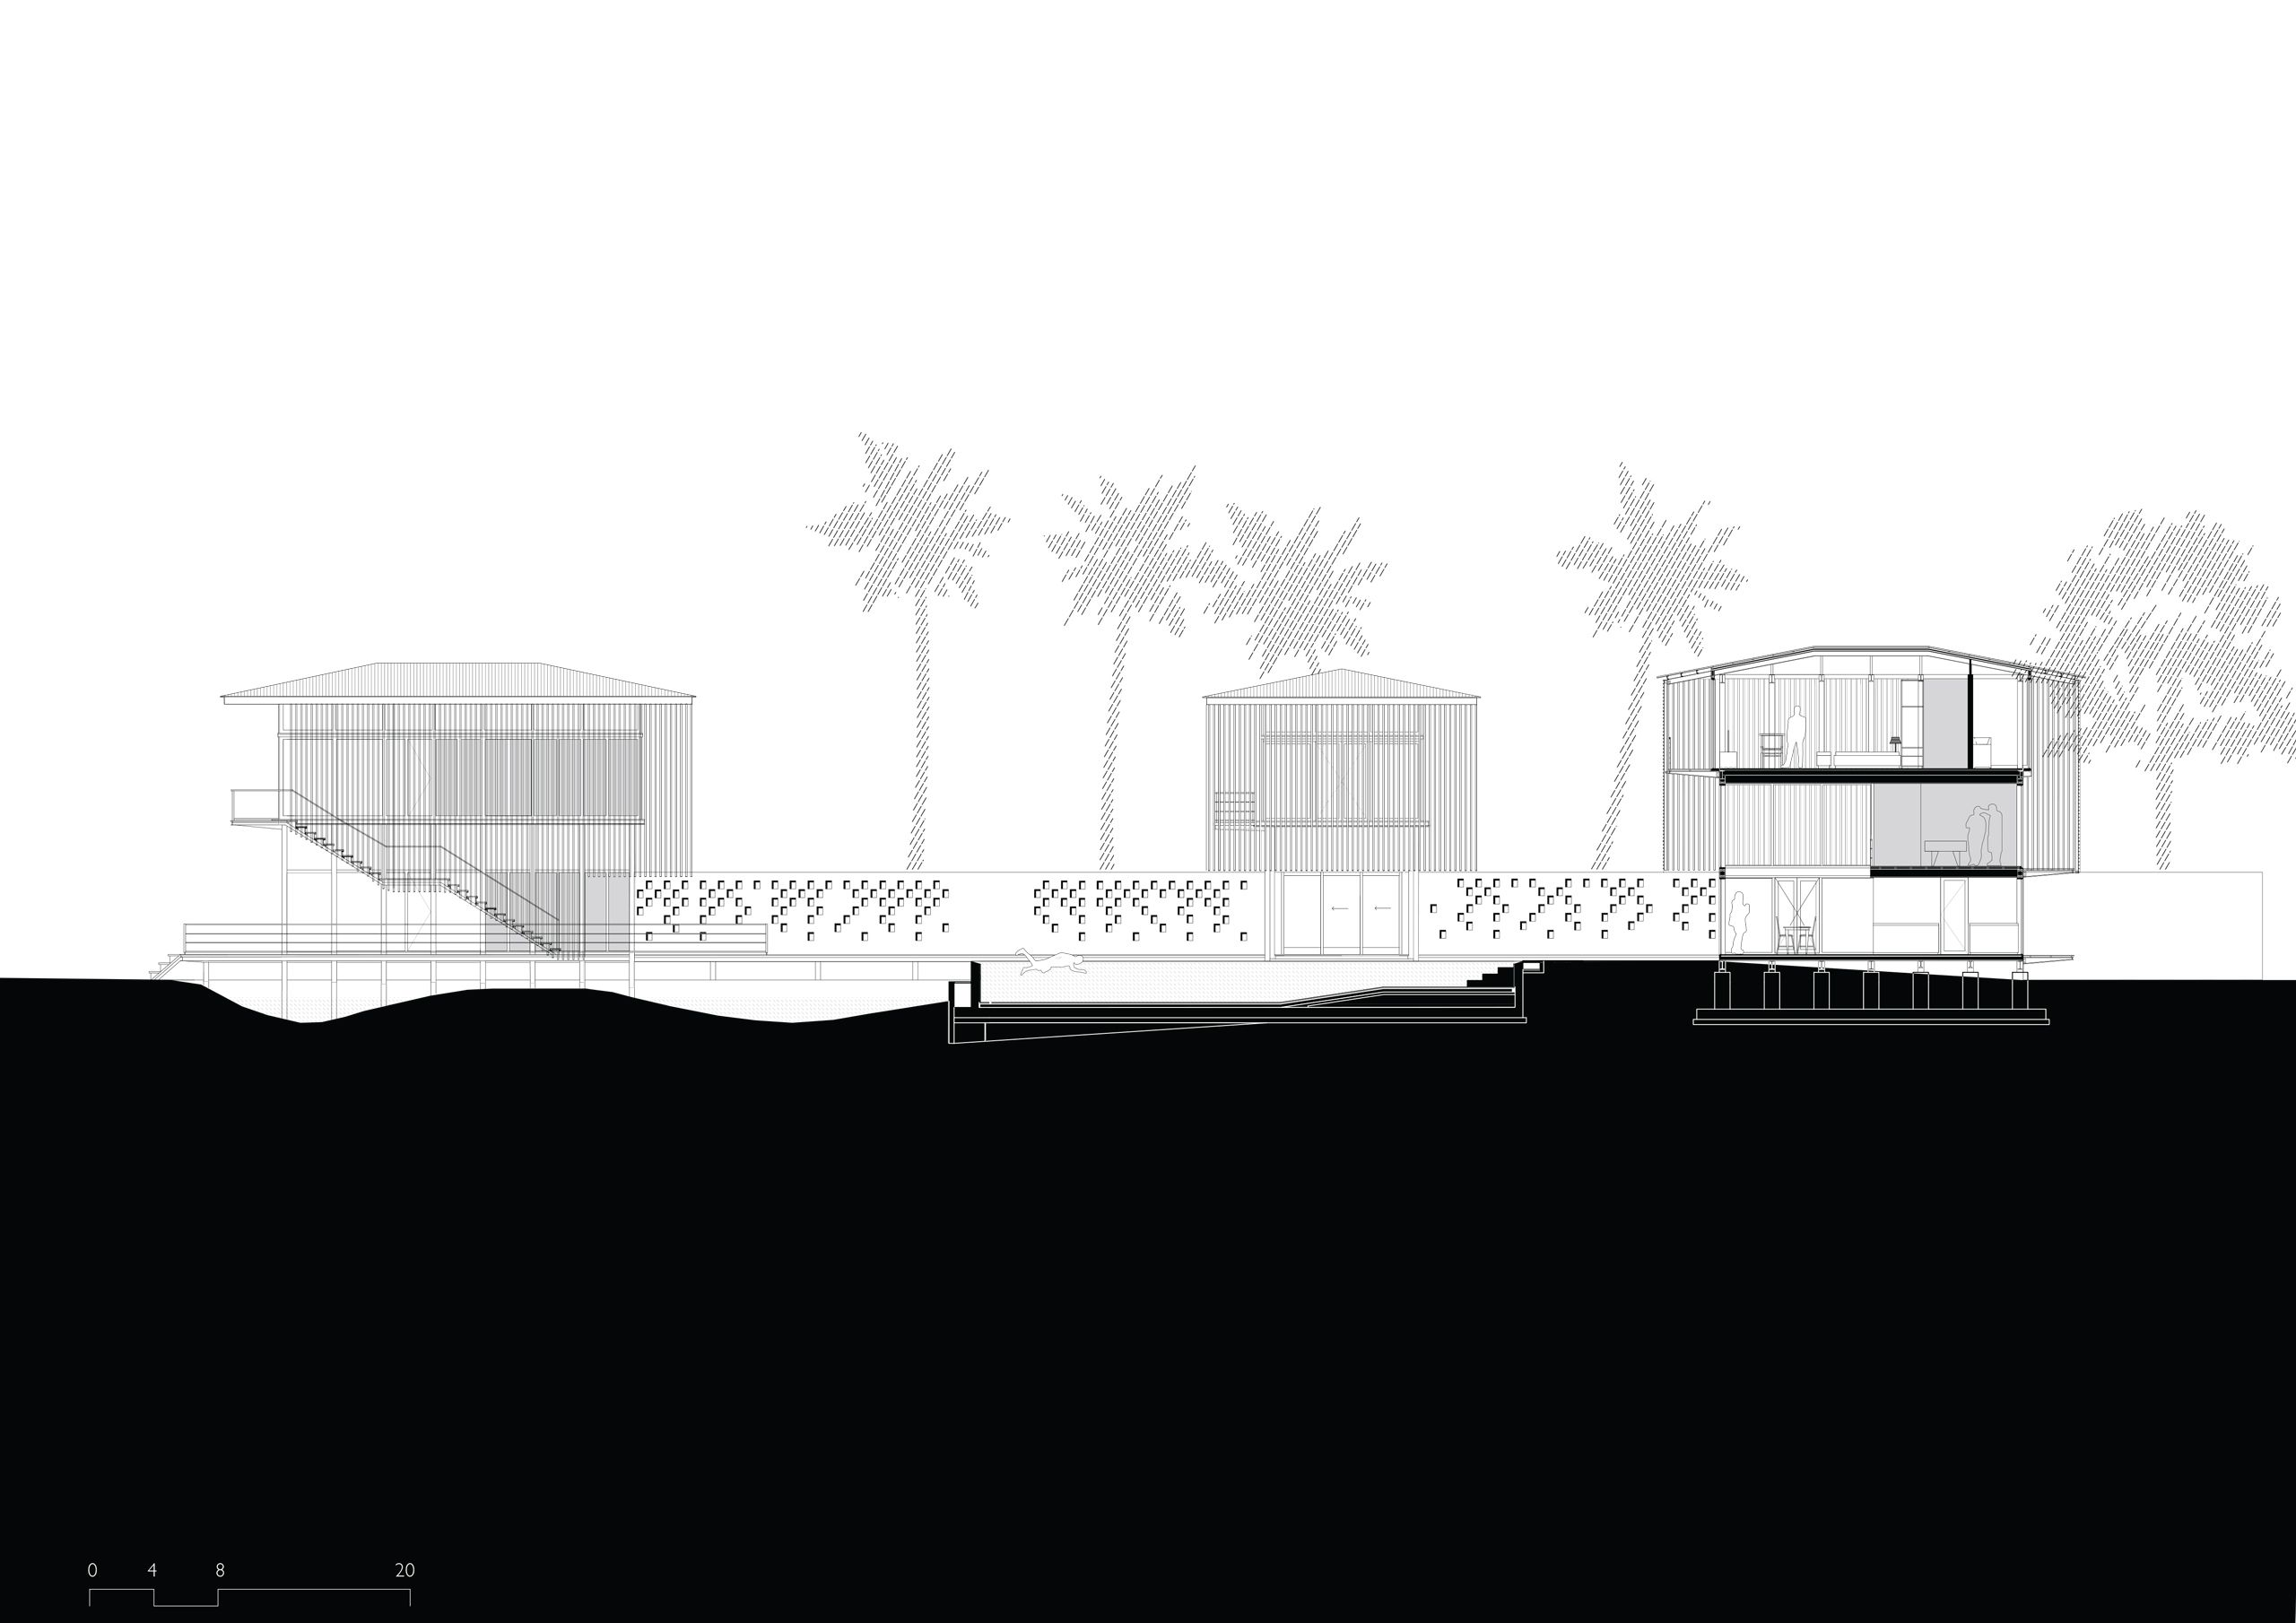 The stilted pavilions of the resort sit light on the landscape in contrast the laterite courtyard walls, which tie these pavilions into the land. The pavilions open to the water bodies on the ground floor, with sliding shutters opening up the living spaces completely. #architecturedrawing #section #blackandwhite #hoteldesigner #hospitalitydesigner #luxuryhoteldesign #luxuryhotelsworld #traveldesign #boutiquehotels #boutiquehoteldesign